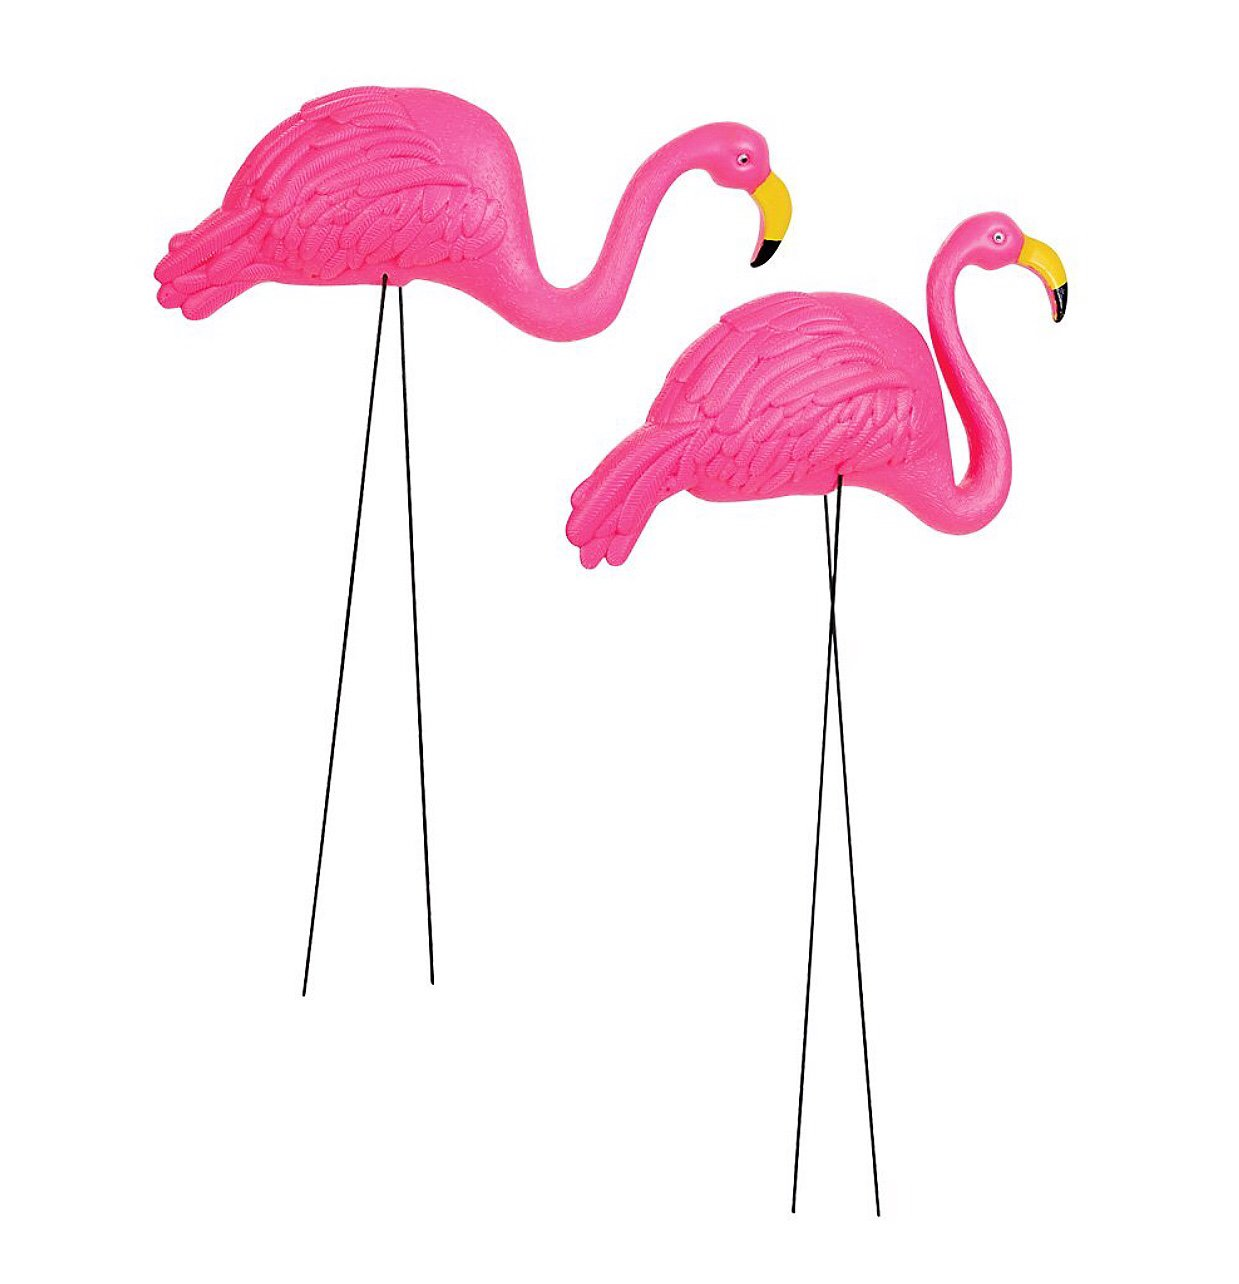 GIFTEXPRESS Pack of 2, 34'' Large Bright Pink Flamingo Yard Ornament/ Flamingo Lawn Ornaments/ink Flamingo Garden Yard Stakes/ Adjustable Feet Length and Gesture